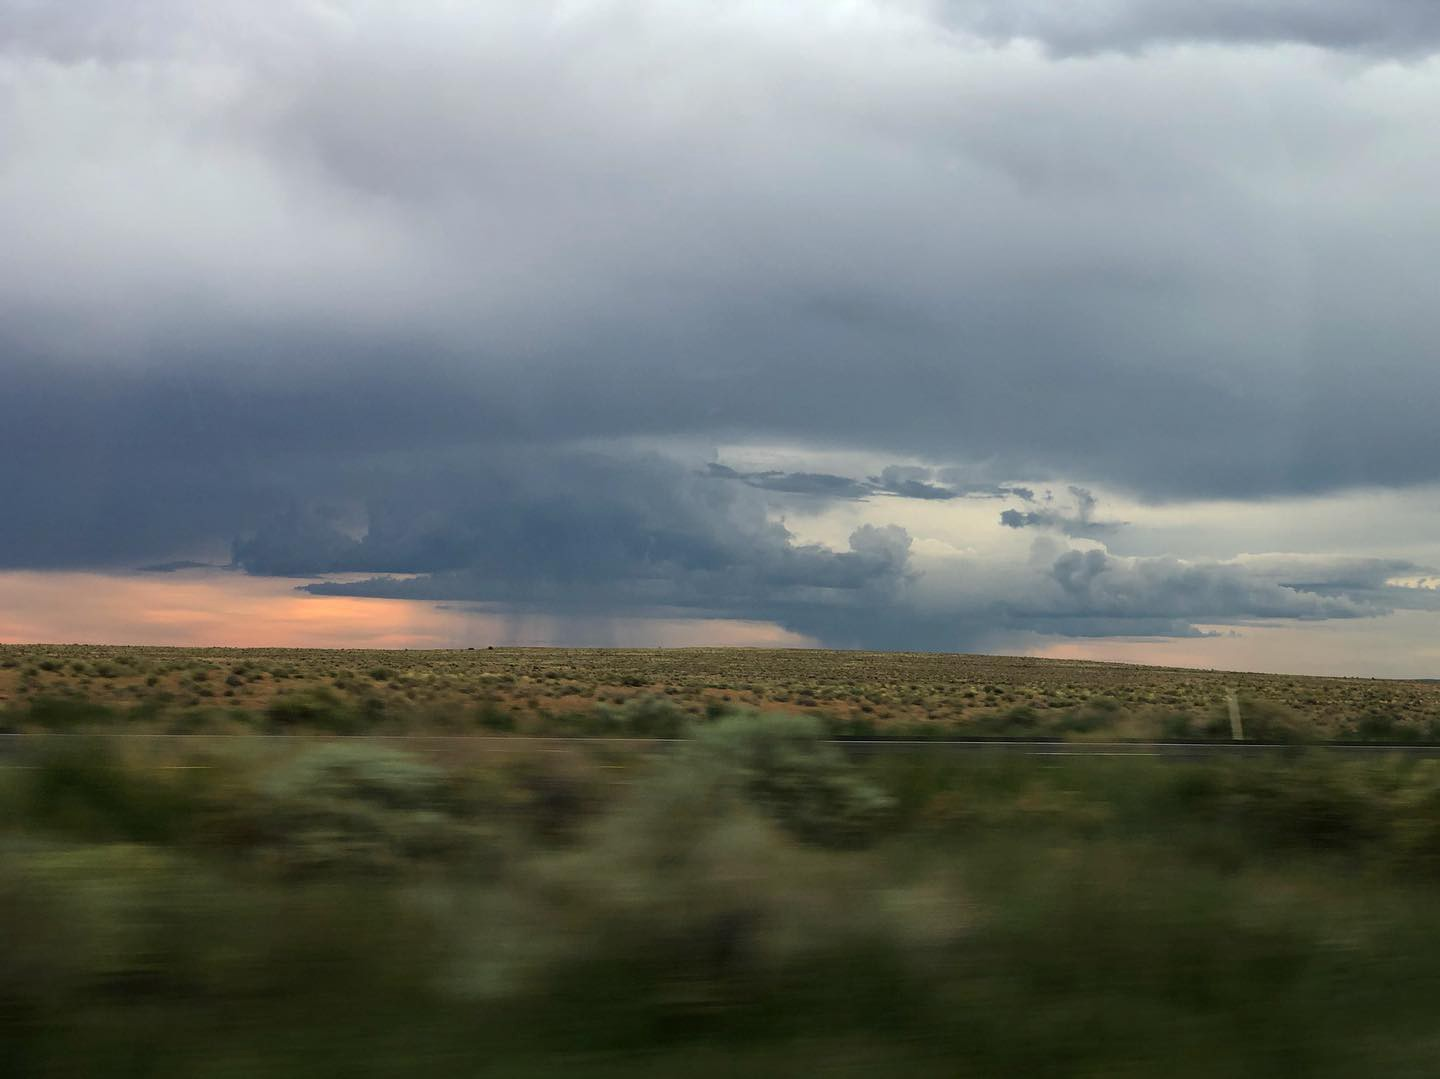 Photo from a moving car,  foreground is blurred, and beyond fields of sage brush, there is a sunset and two rain storms.